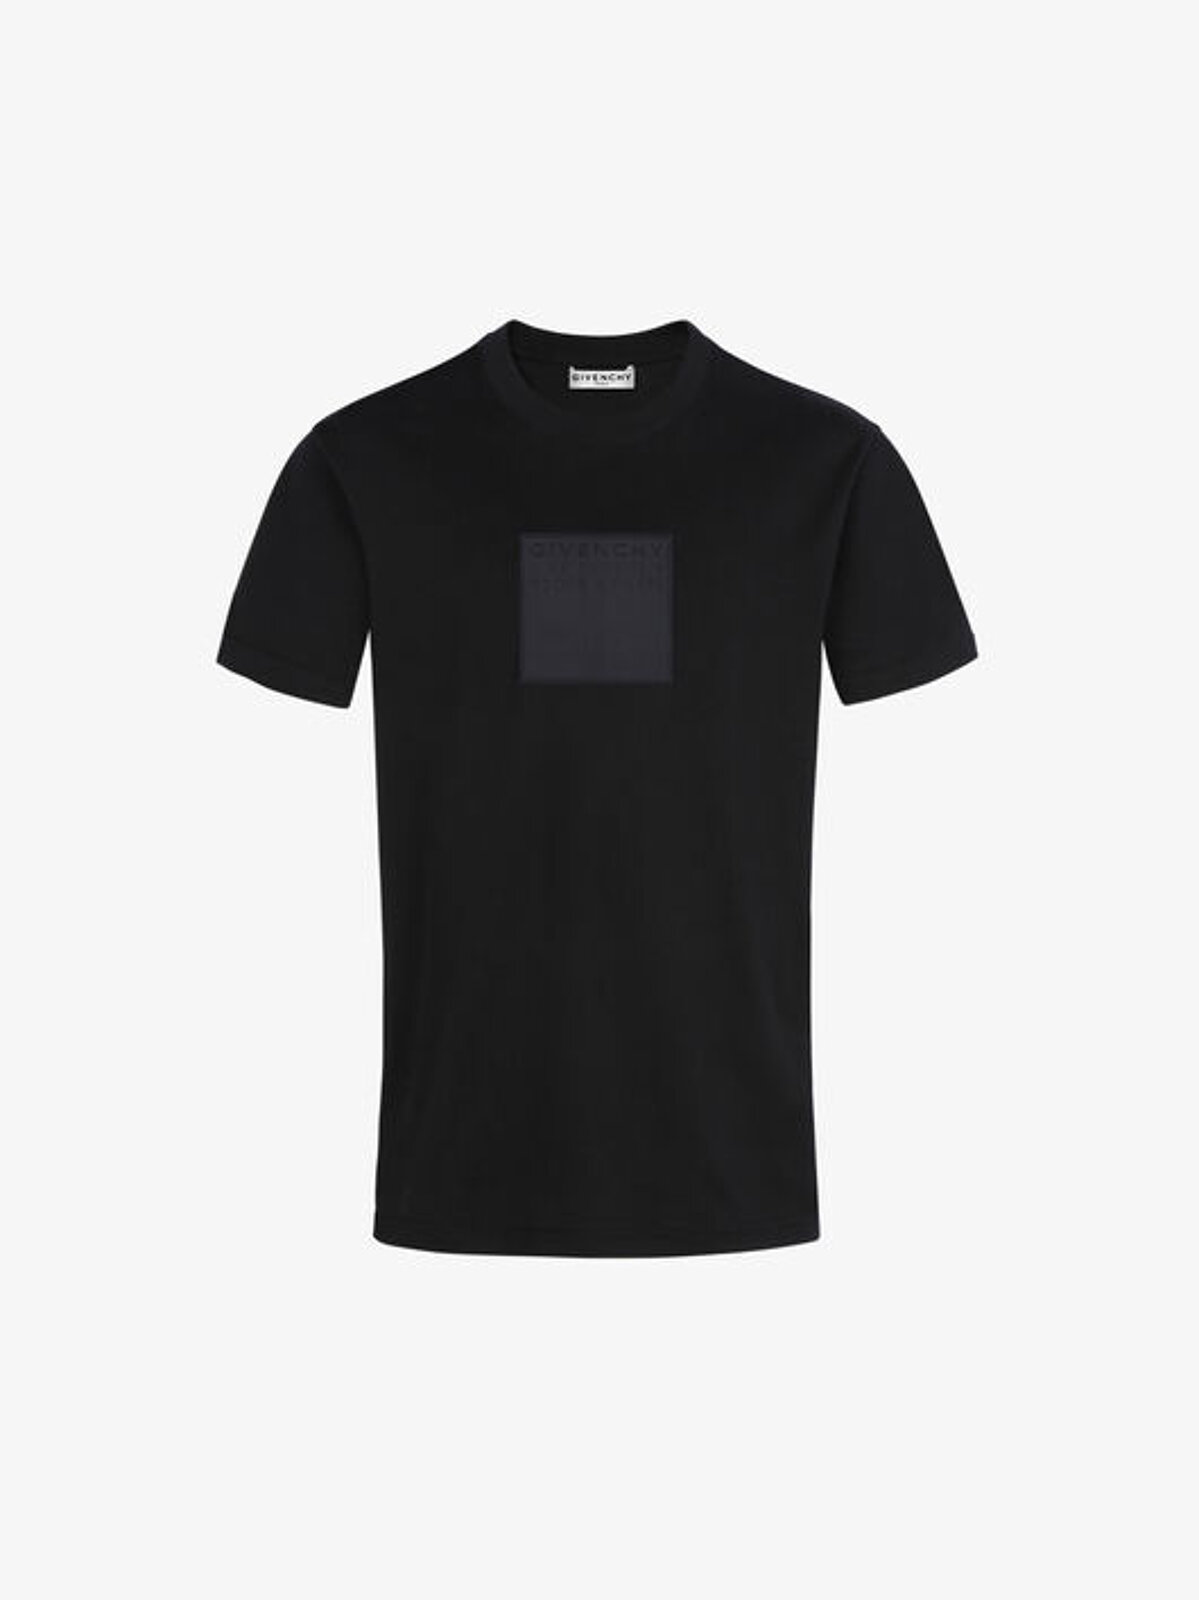 T-Shirt Slim Fit Adresse Givenchy - Givenchy